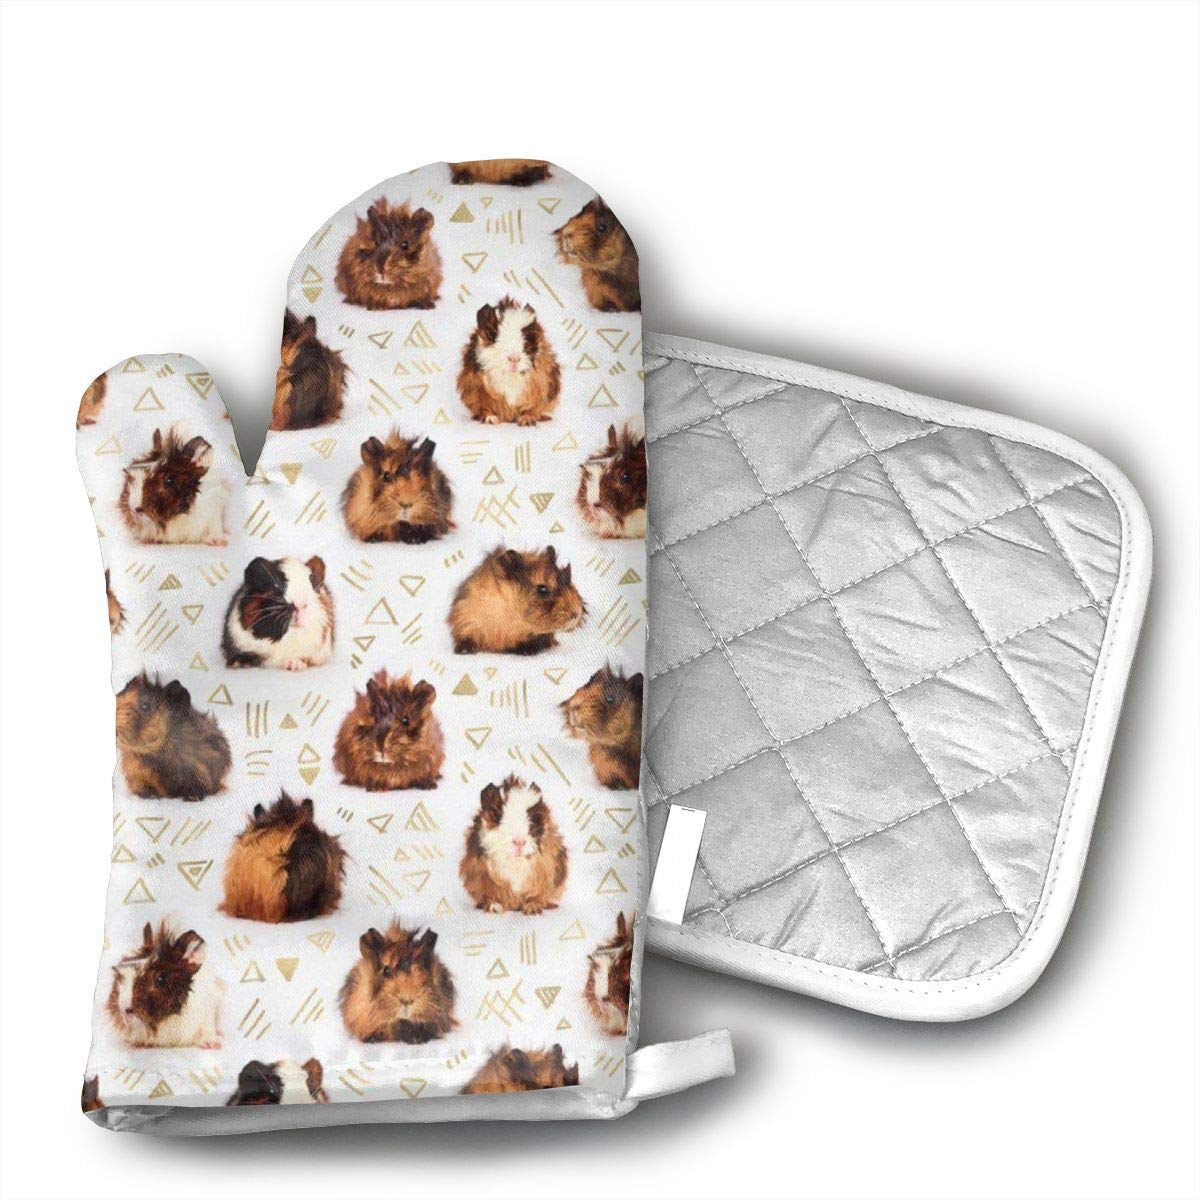 Wiqo9 Guinea Pigs Oven Mitts and Pot Holders Kitchen Mitten Cooking Gloves,Cooking, Baking, BBQ.